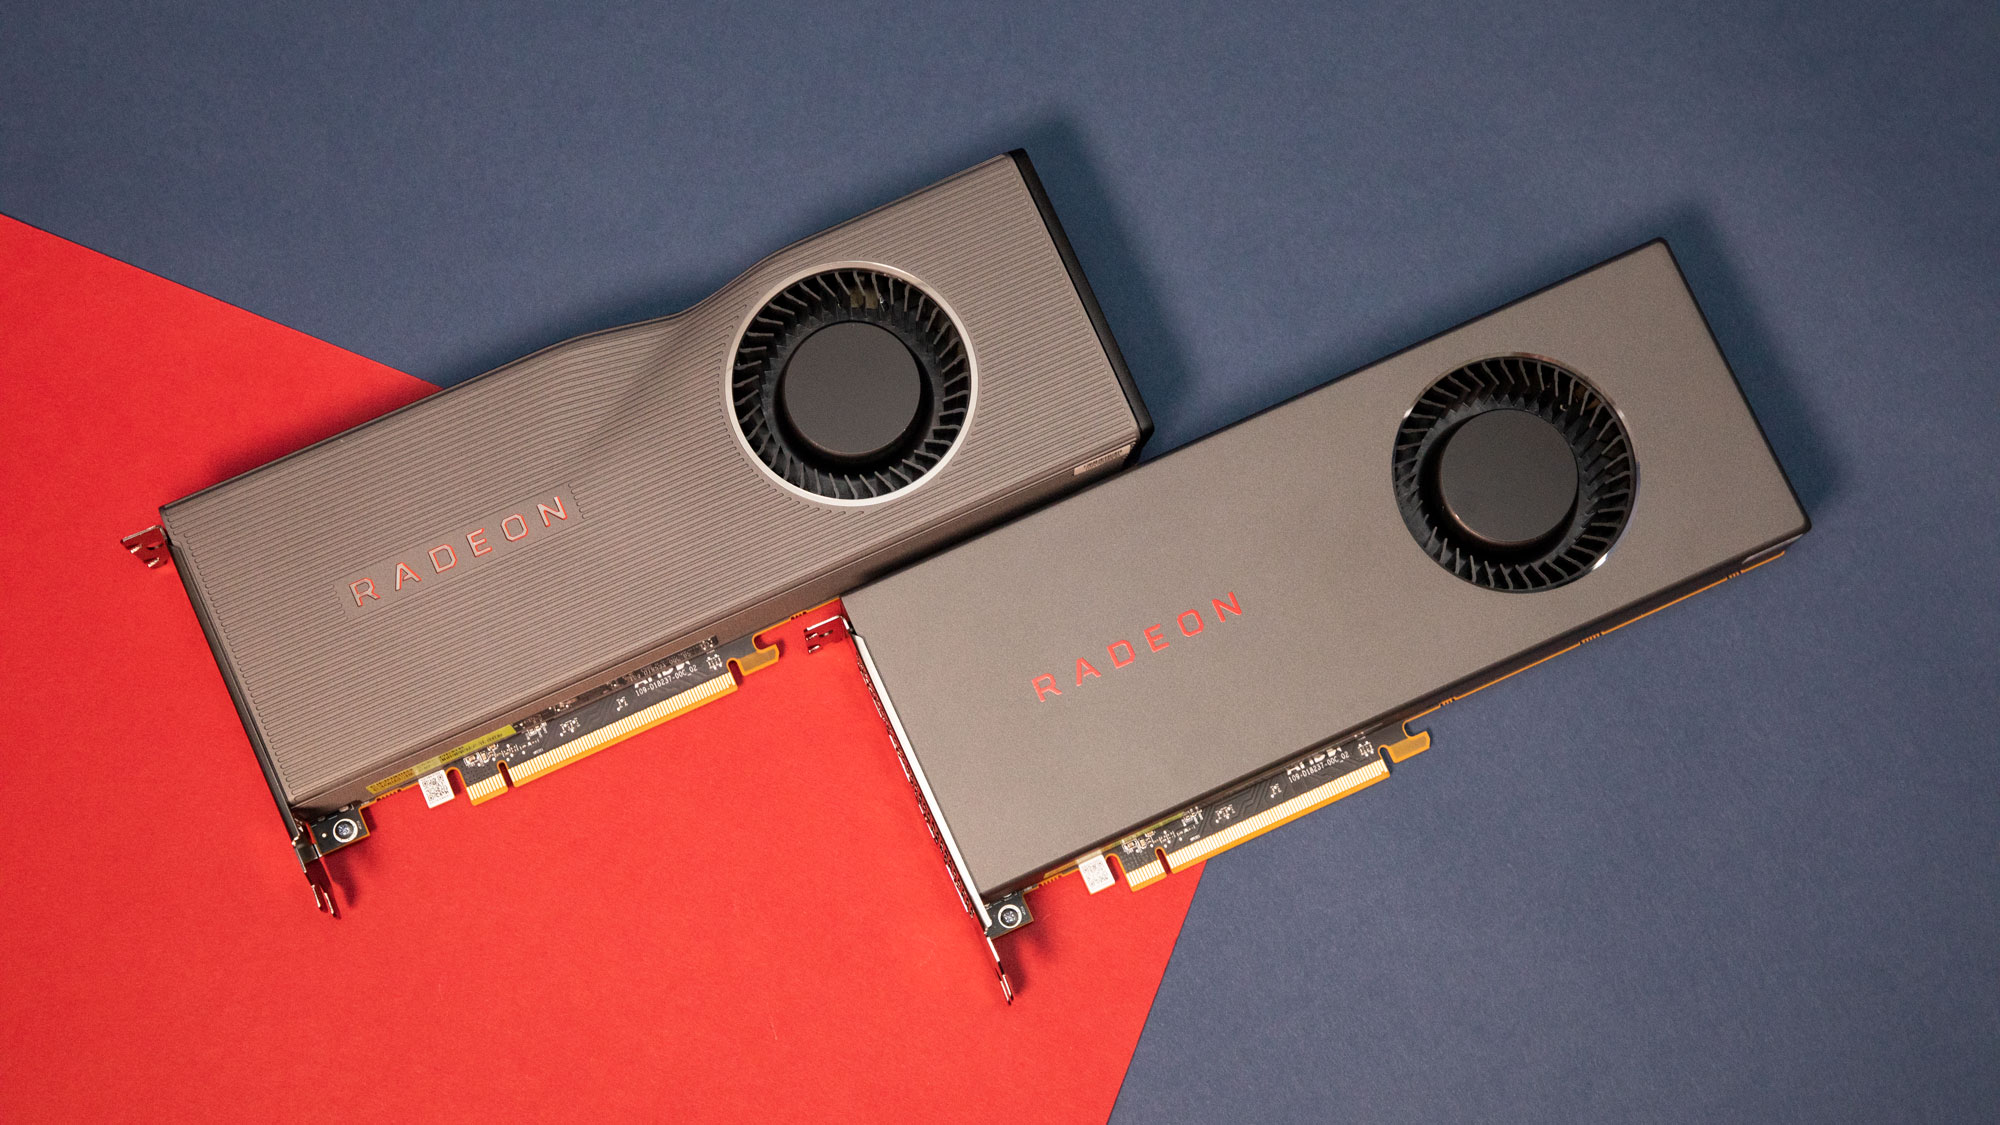 best-1440p-graphics-cards-2021:-the-best-gpus-for-1440p-gaming